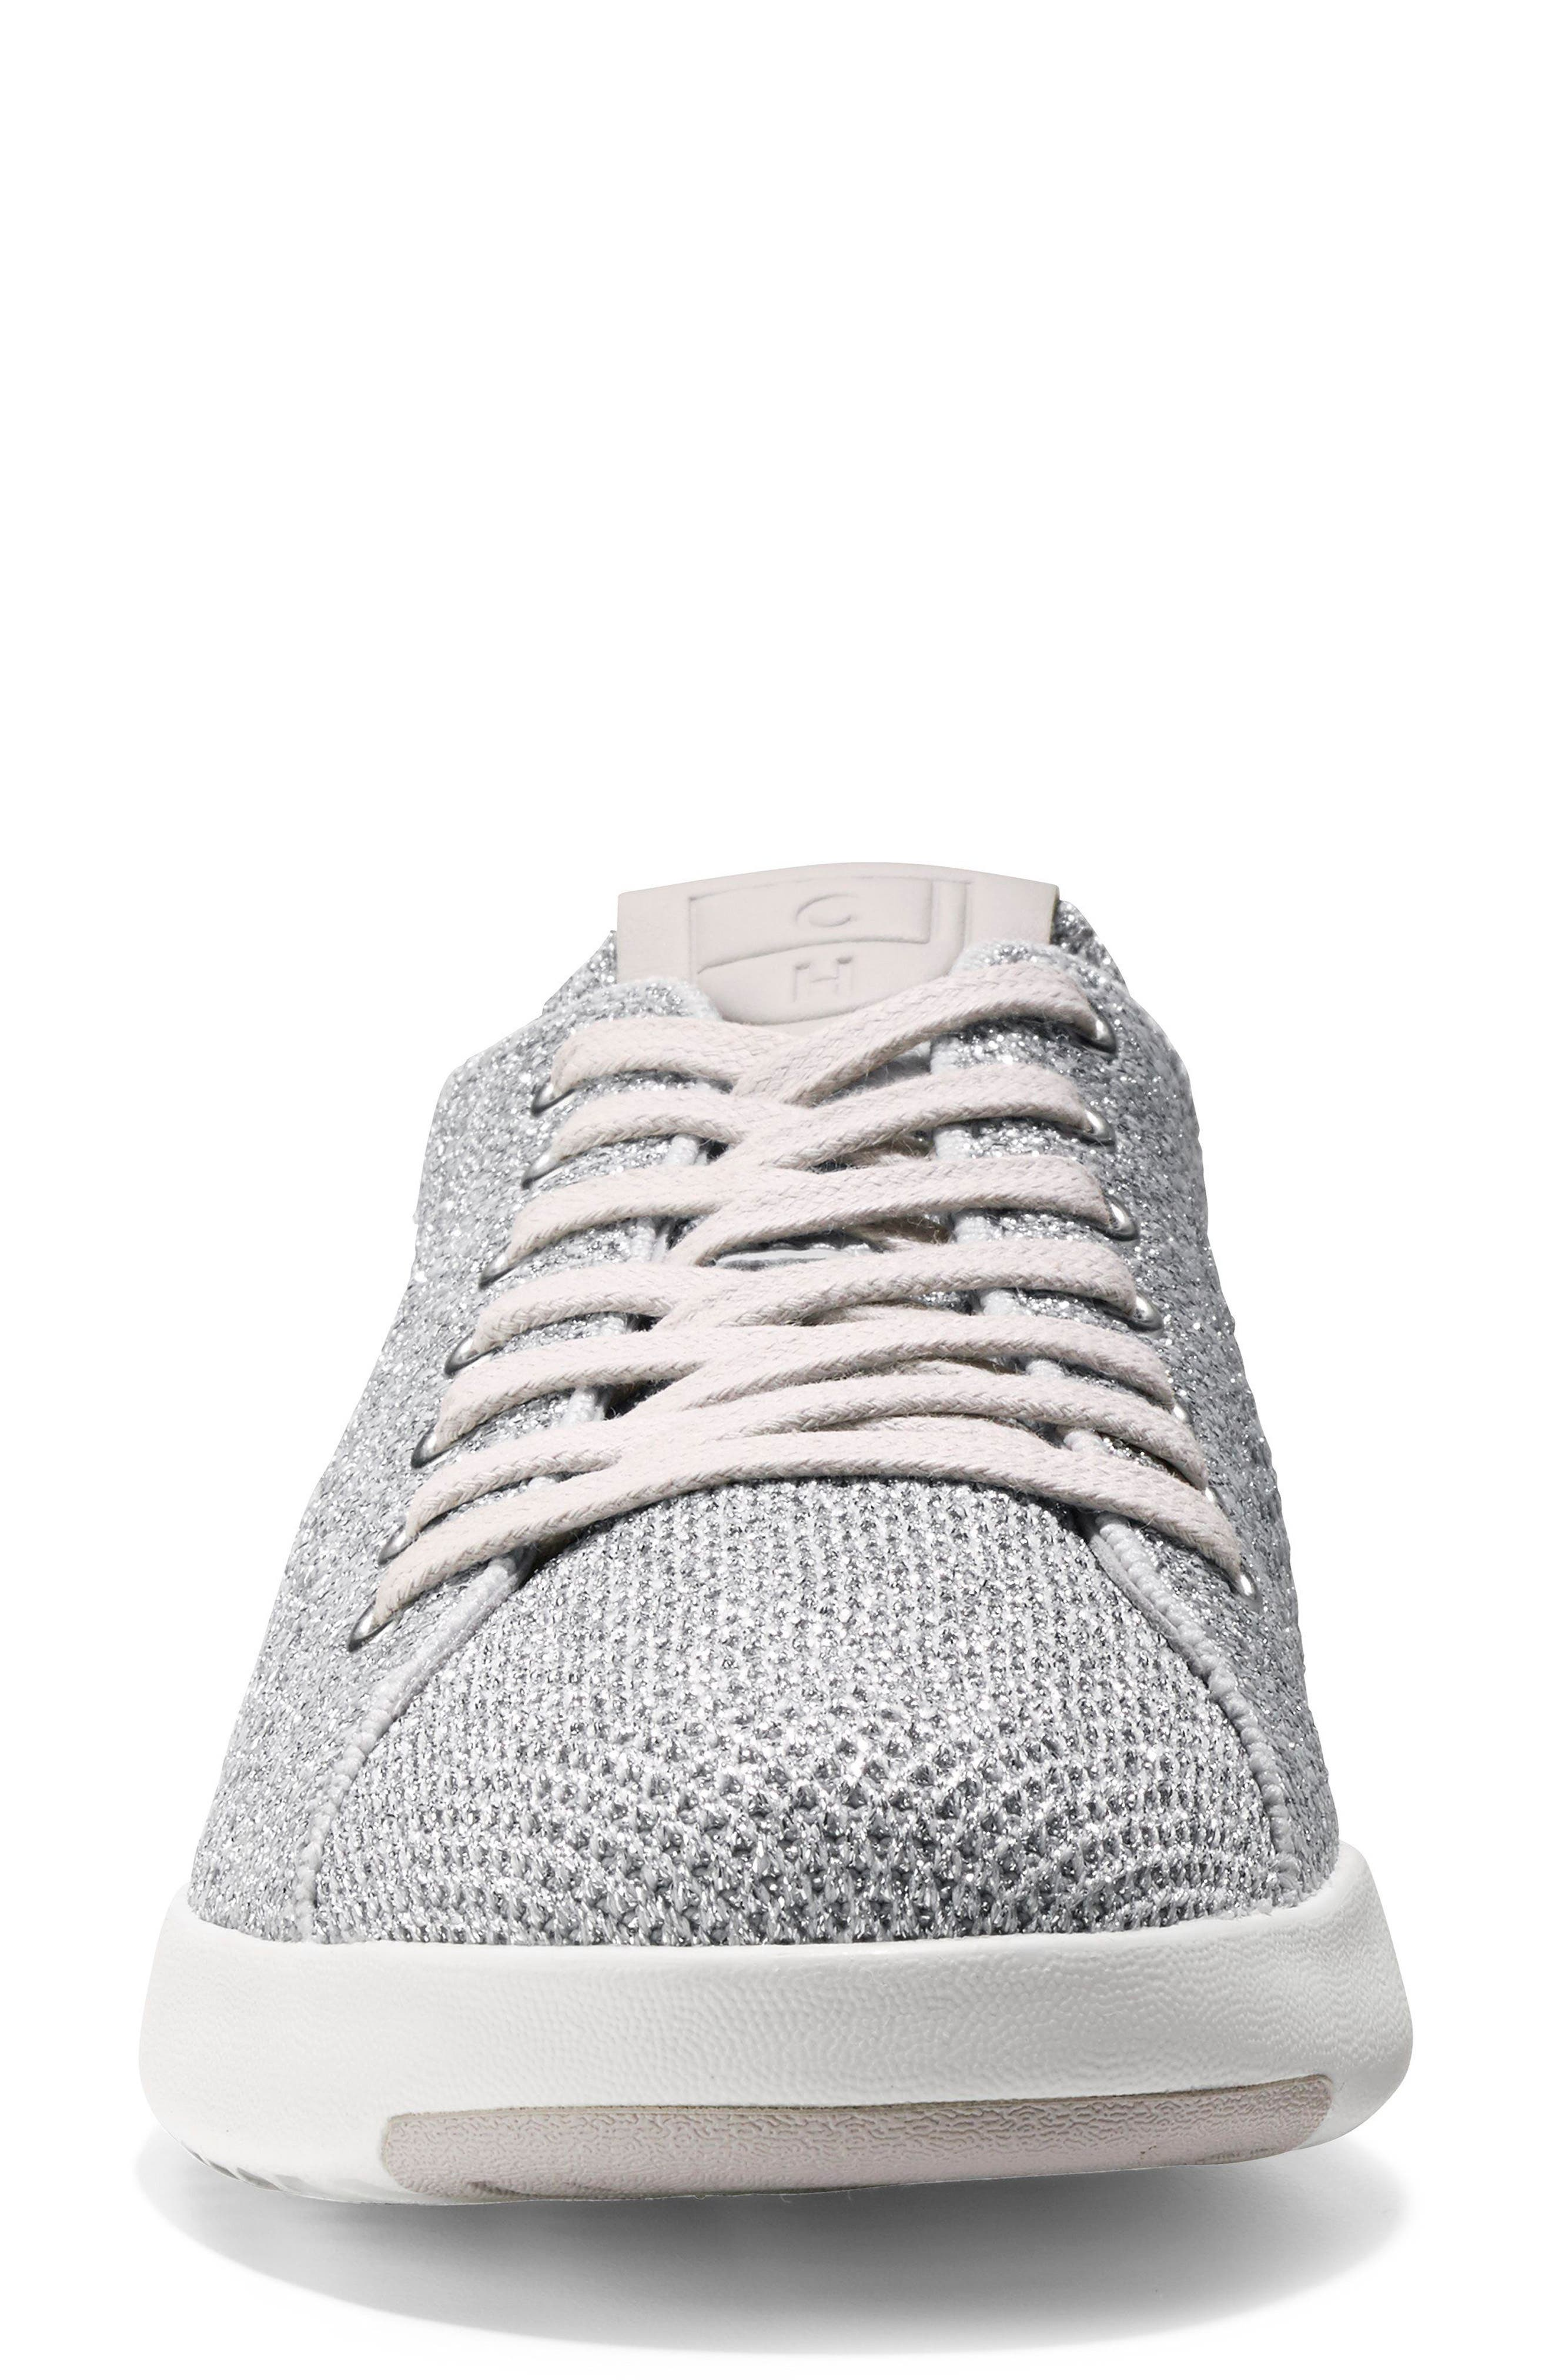 GrandPro Stitchlite Sneaker,                             Alternate thumbnail 4, color,                             Silver Fabric